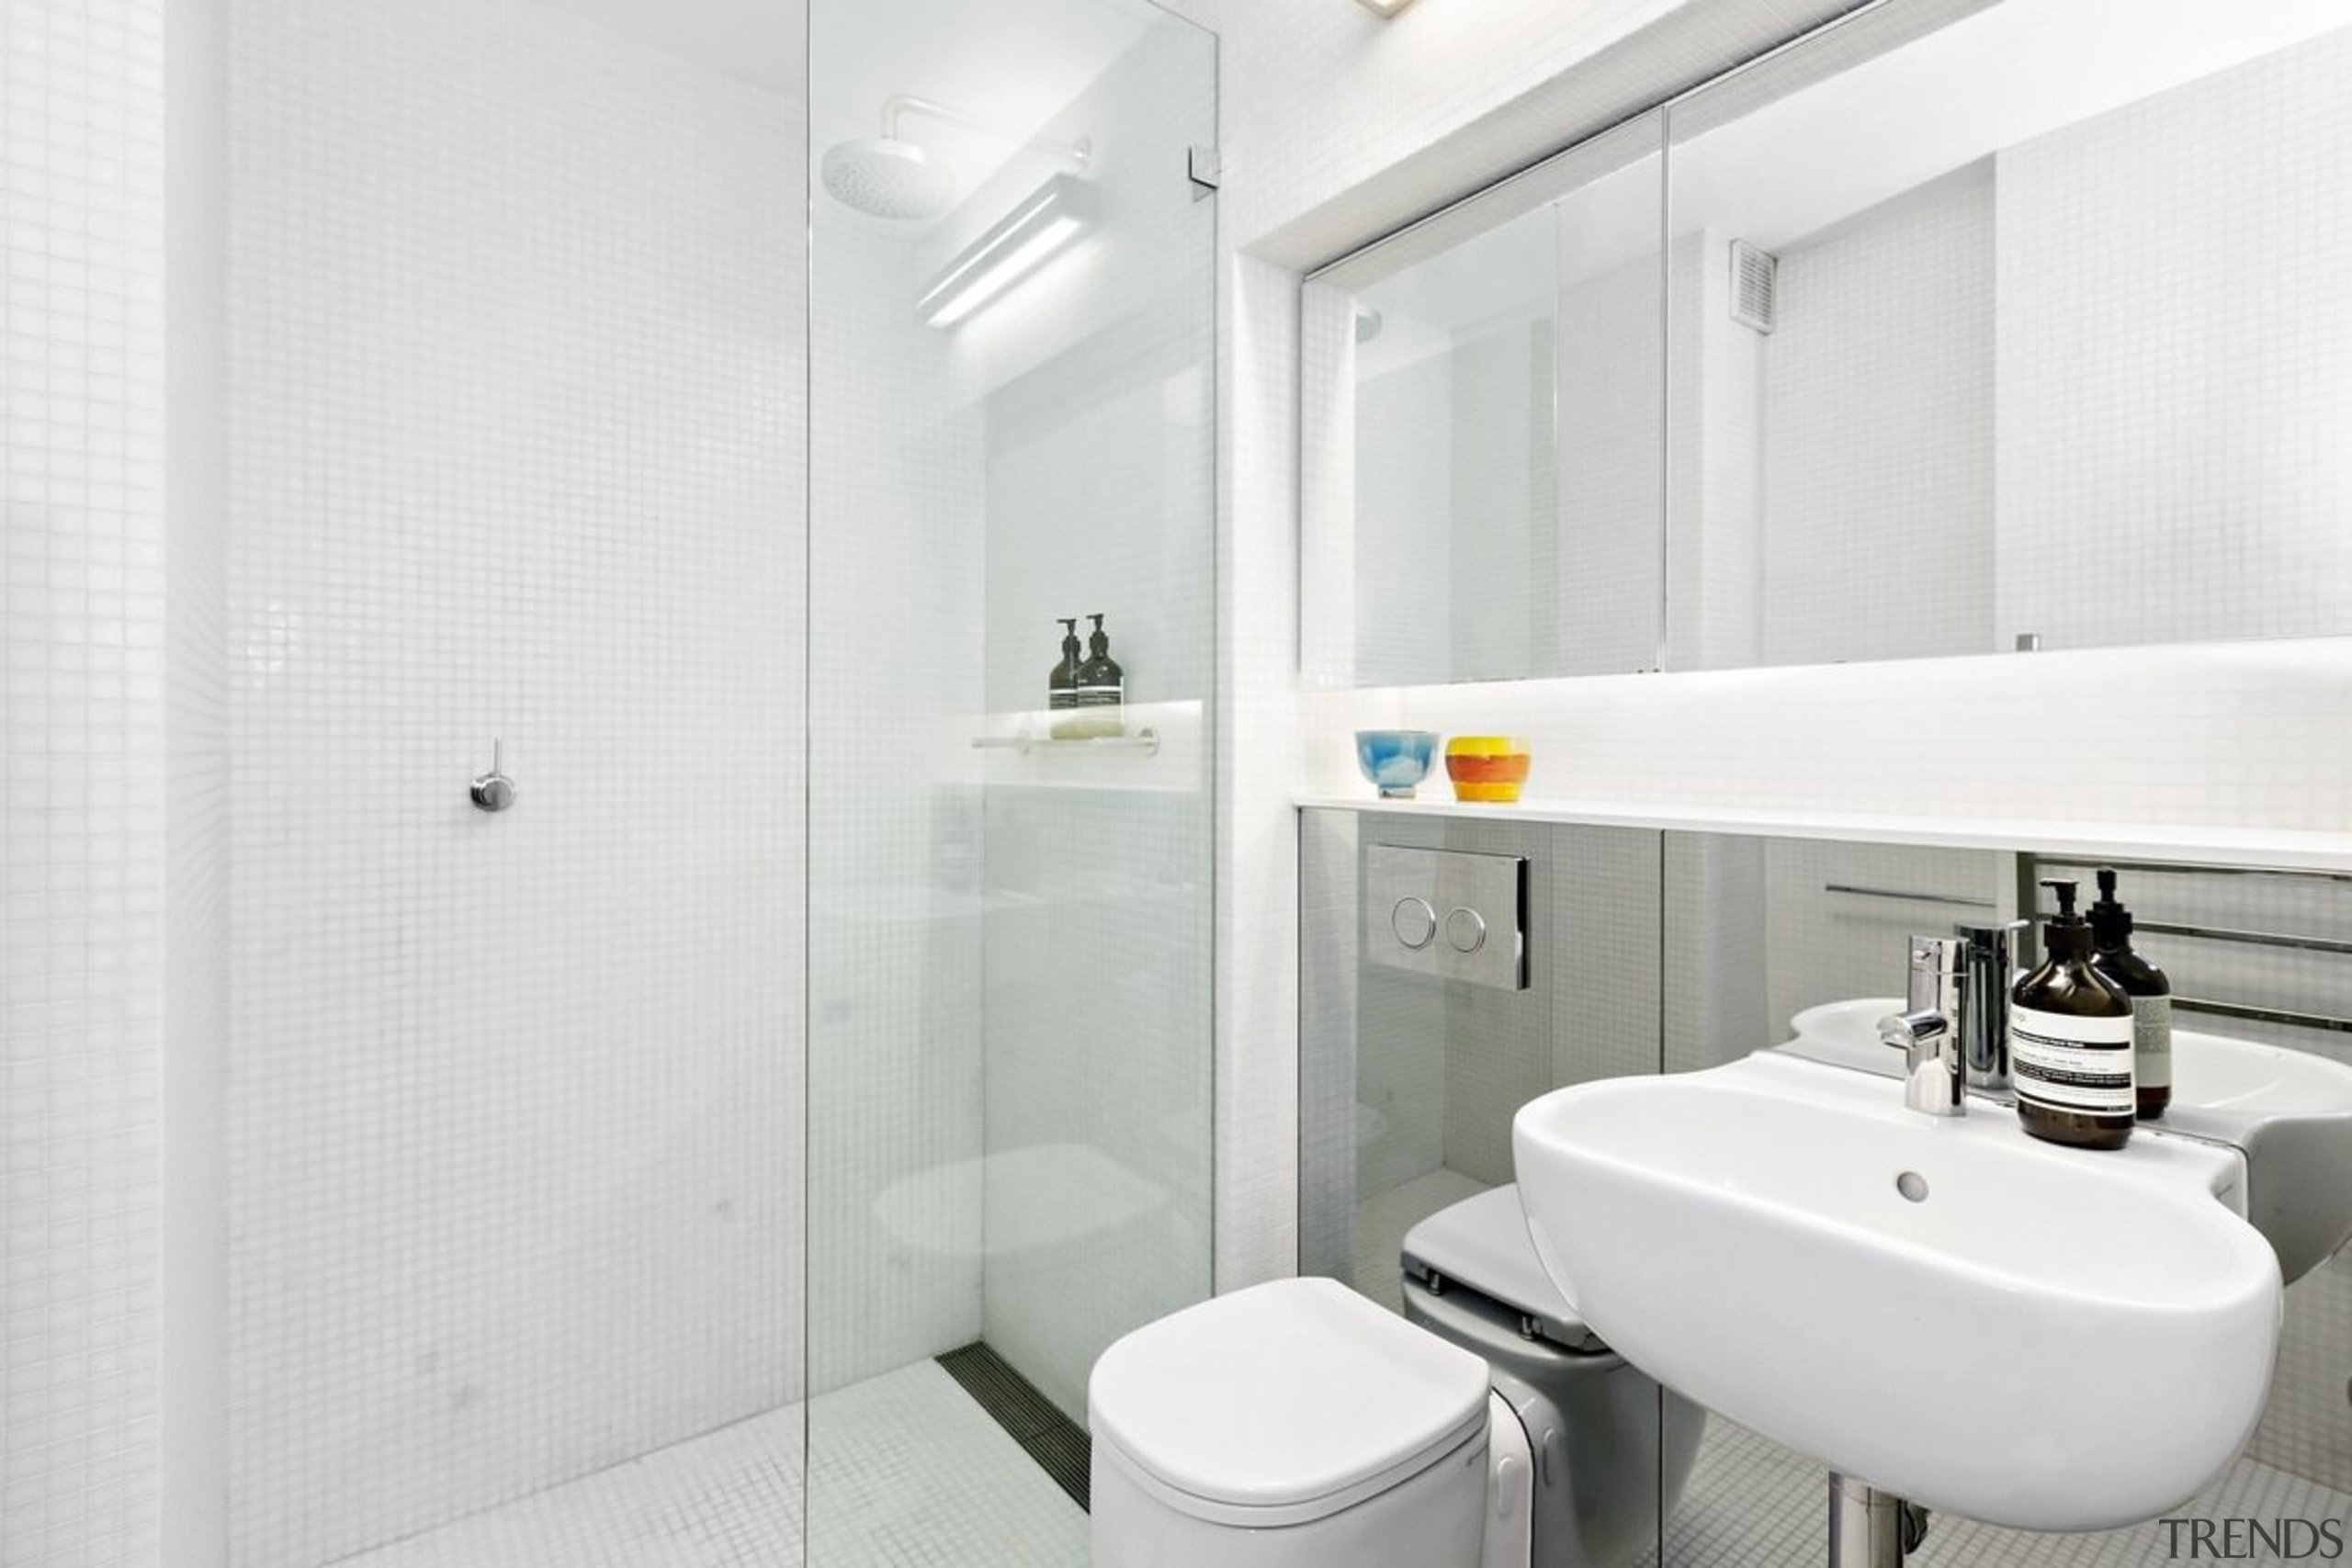 A large mirrored wall is broken up by bathroom, bathroom accessory, interior design, plumbing fixture, product design, property, room, tap, toilet seat, white